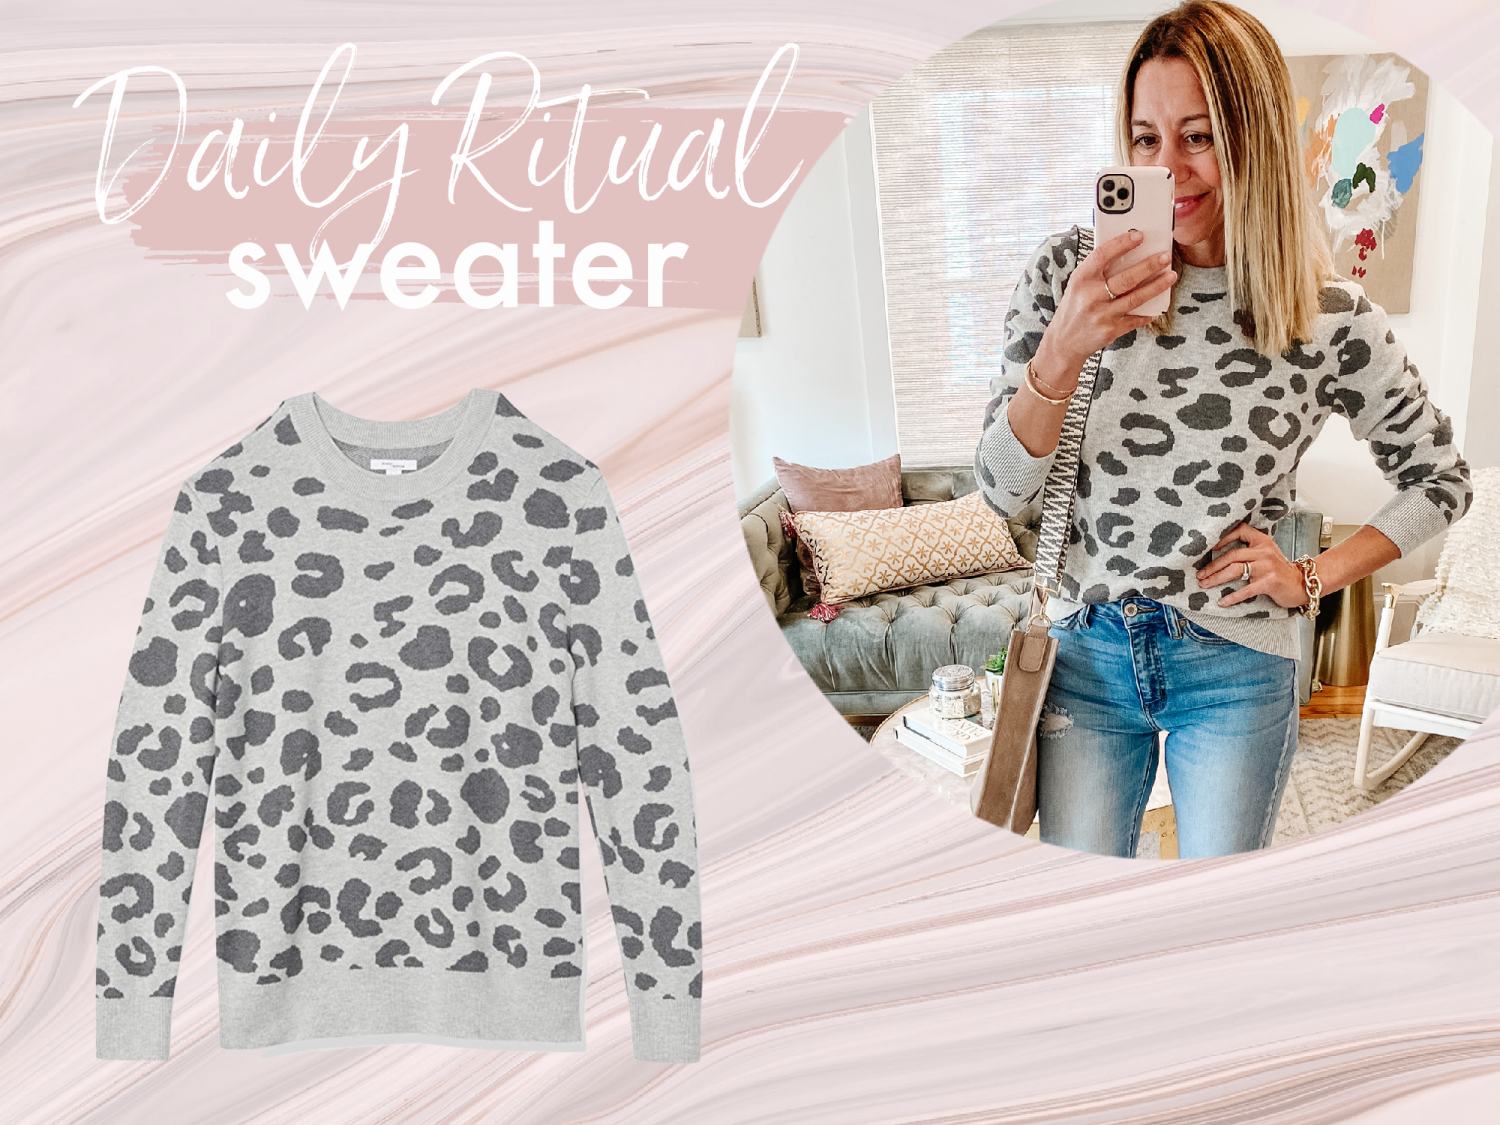 the motherchic wearing favorite amazon sweaters daily ritual